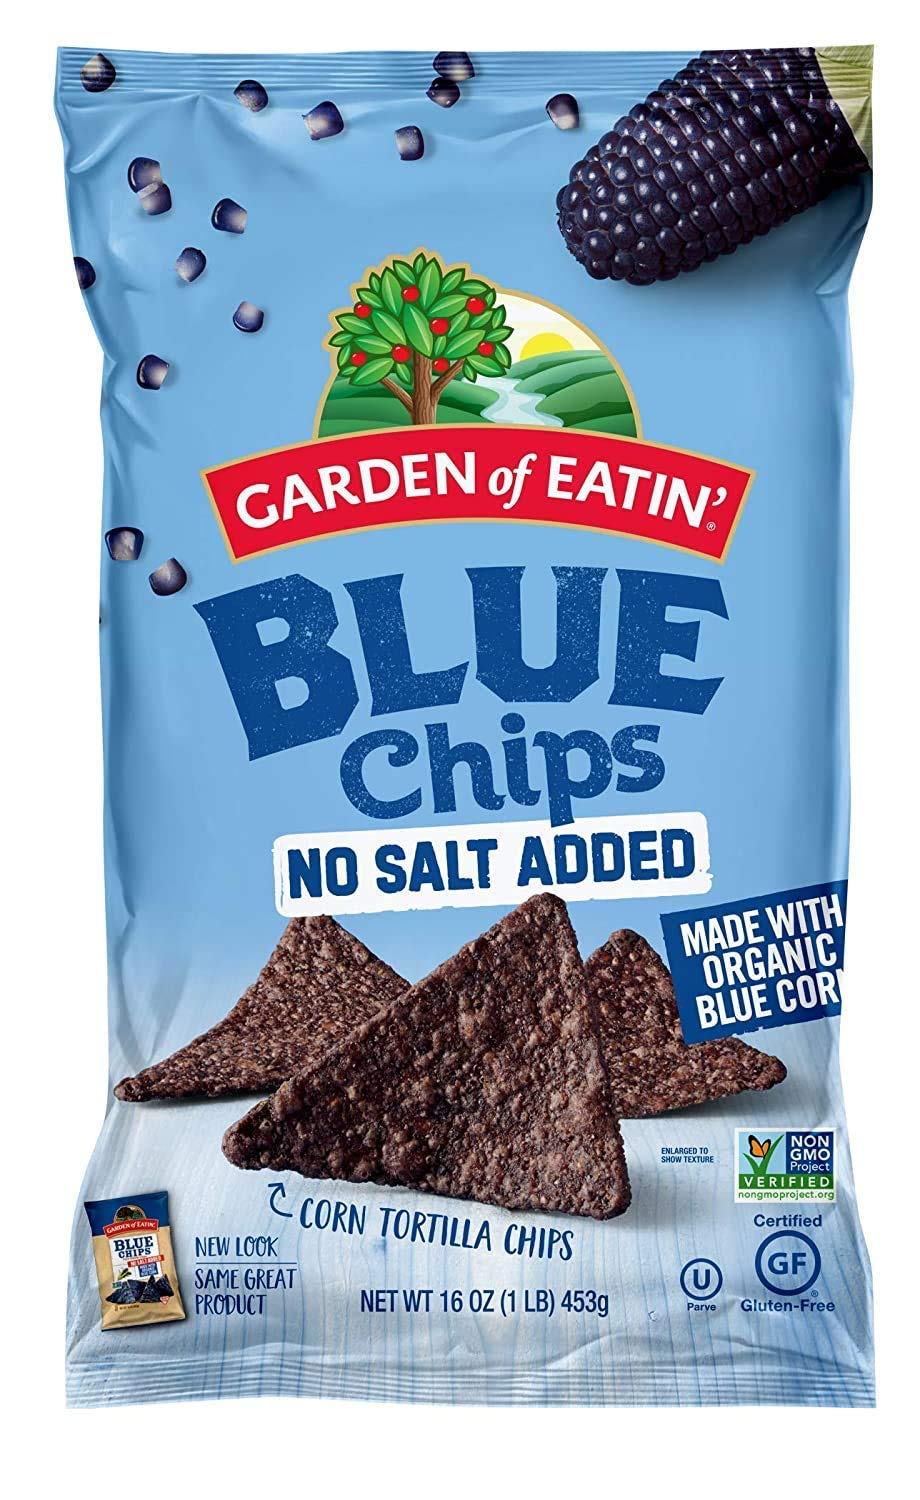 Garden of Eatin' No Salt Added Blue Corn Tortilla Chips, 8.1 oz.